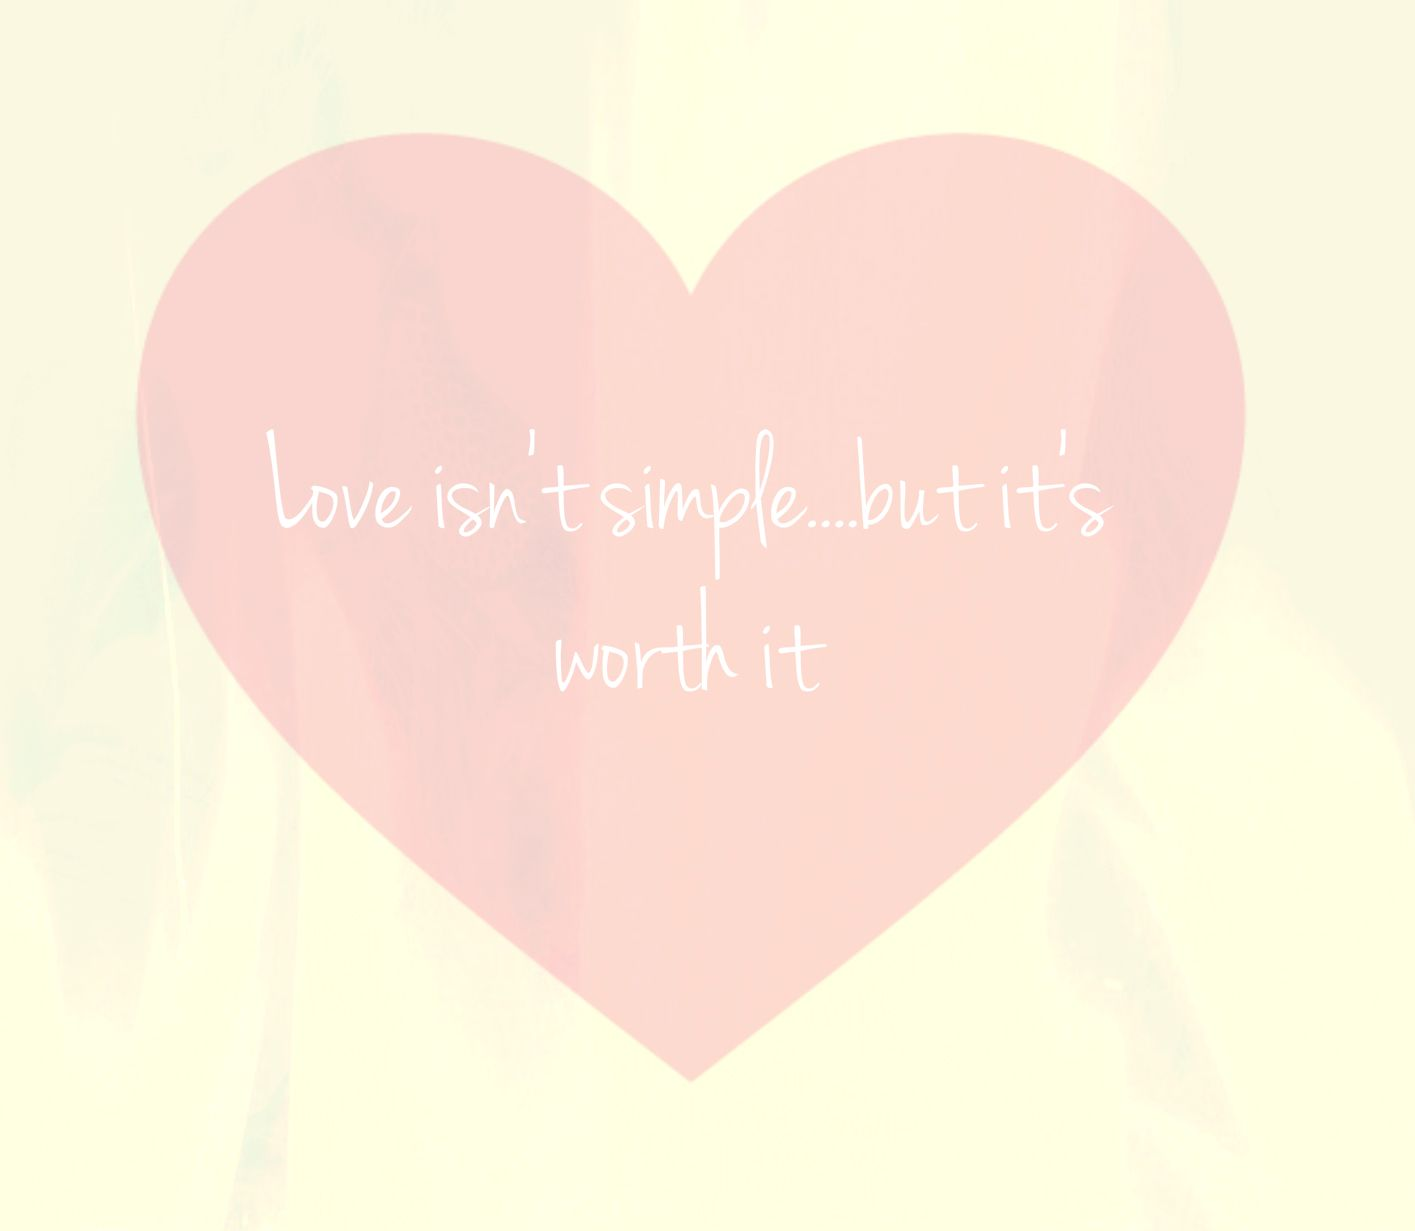 Love isn't simple, but it's worth it<3 #words